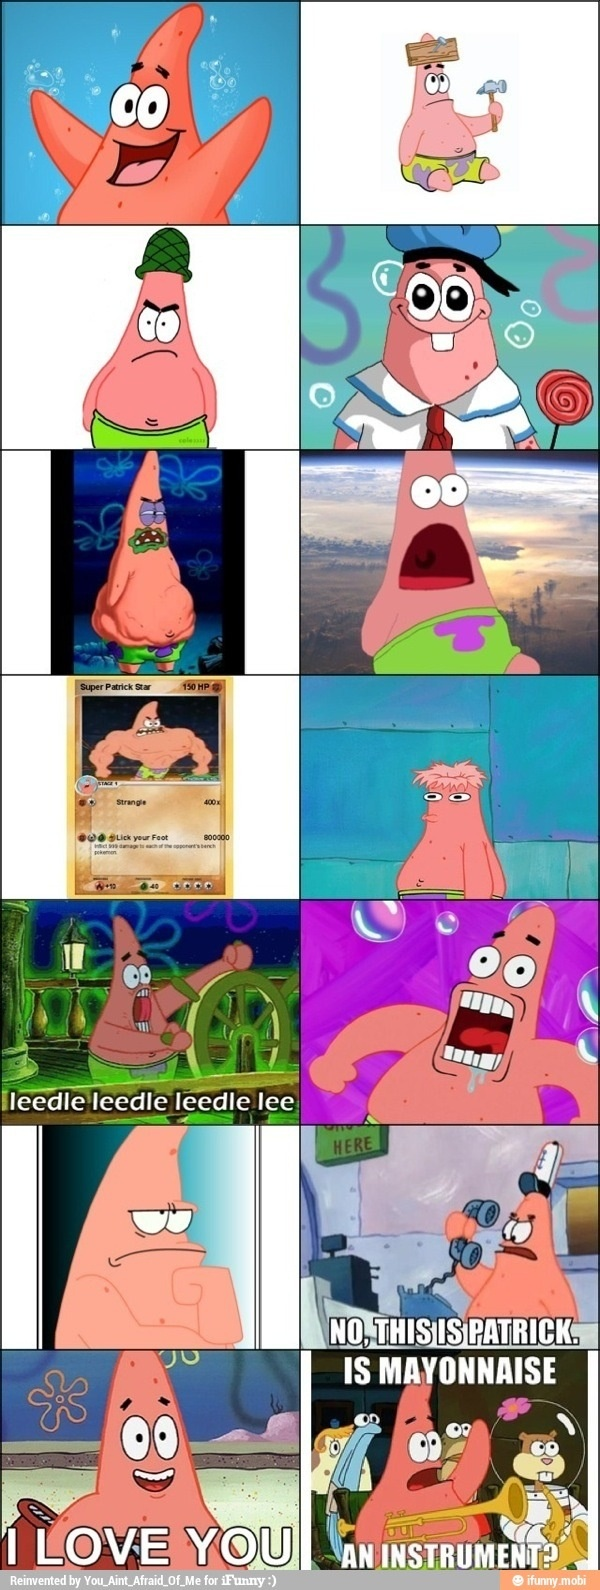 The many faces of Patrick Star.